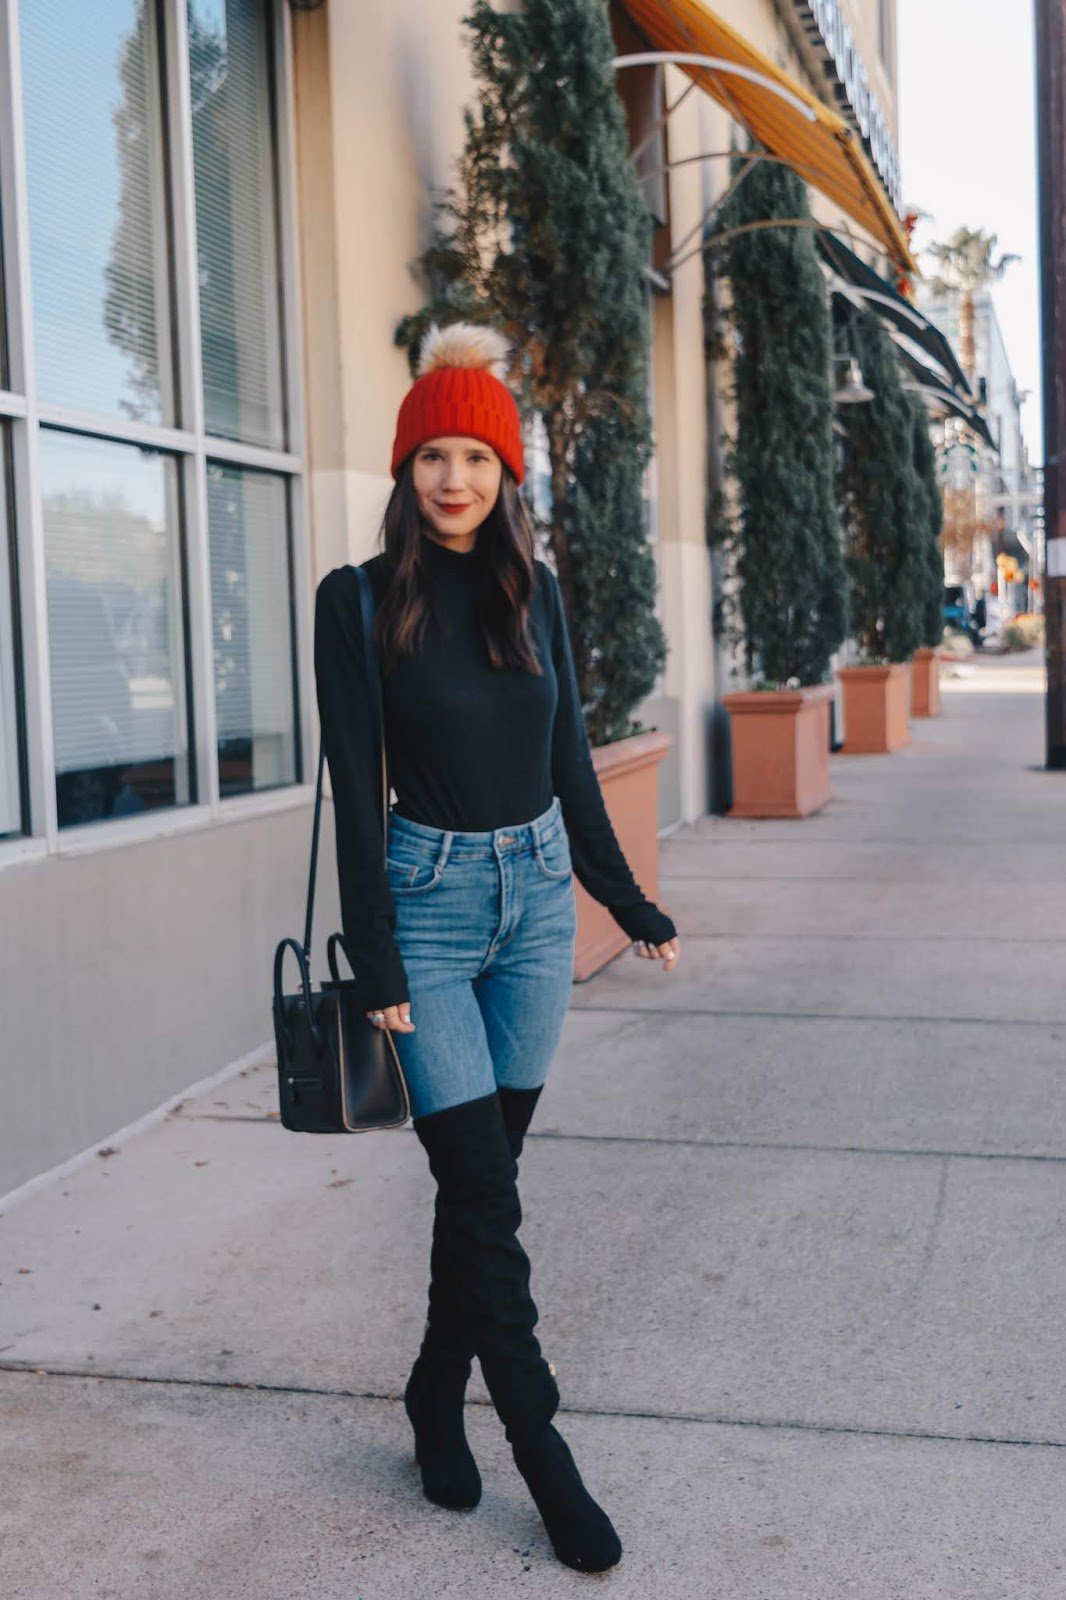 Simple outfit for winter